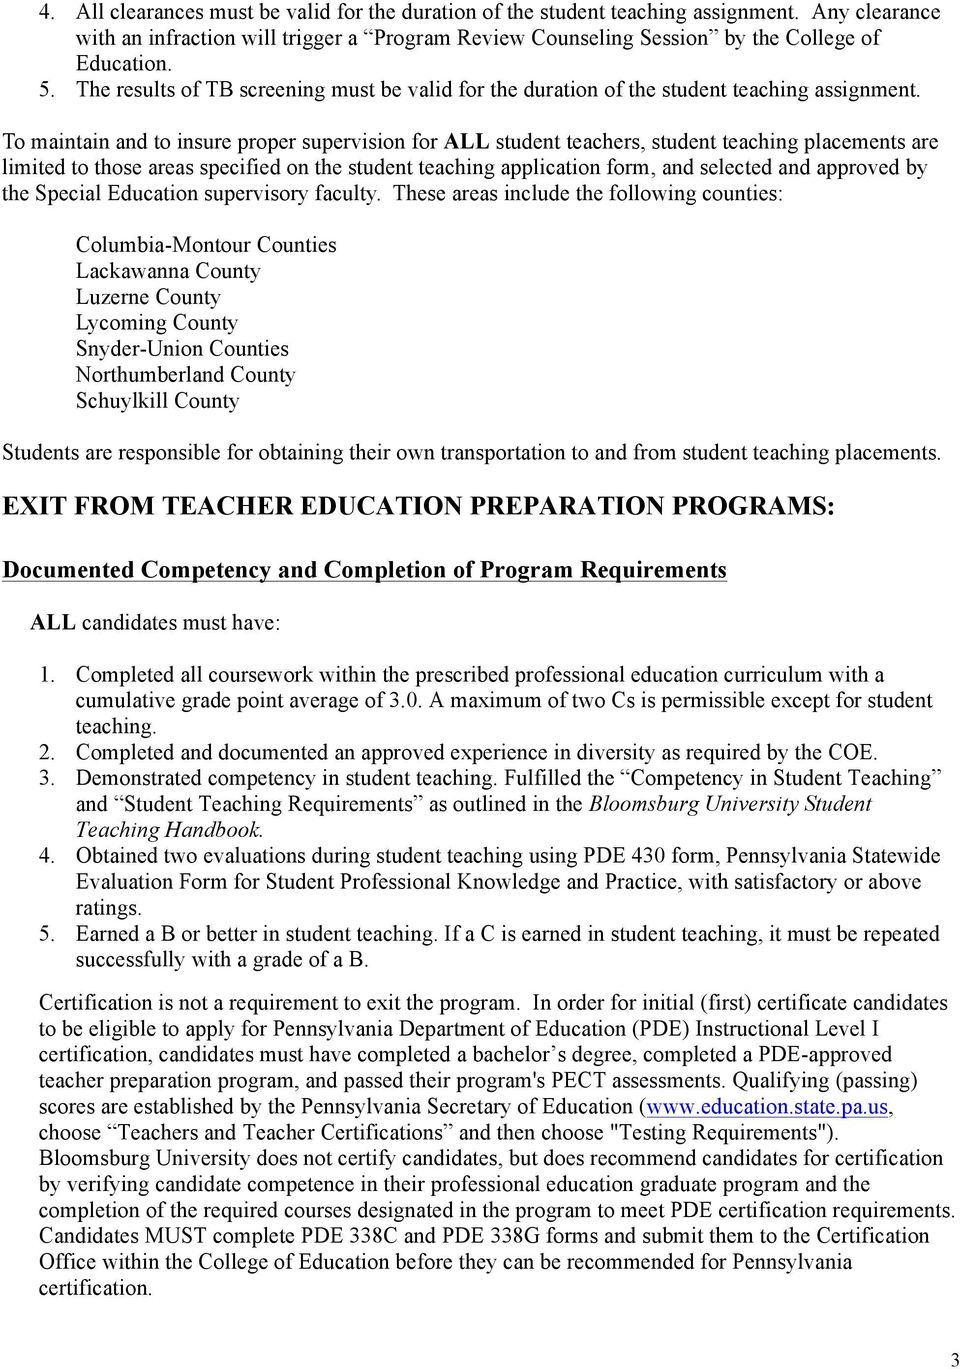 To maintain and to insure proper supervision for ALL student teachers, student teaching placements are limited to those areas specified on the student teaching application form, and selected and